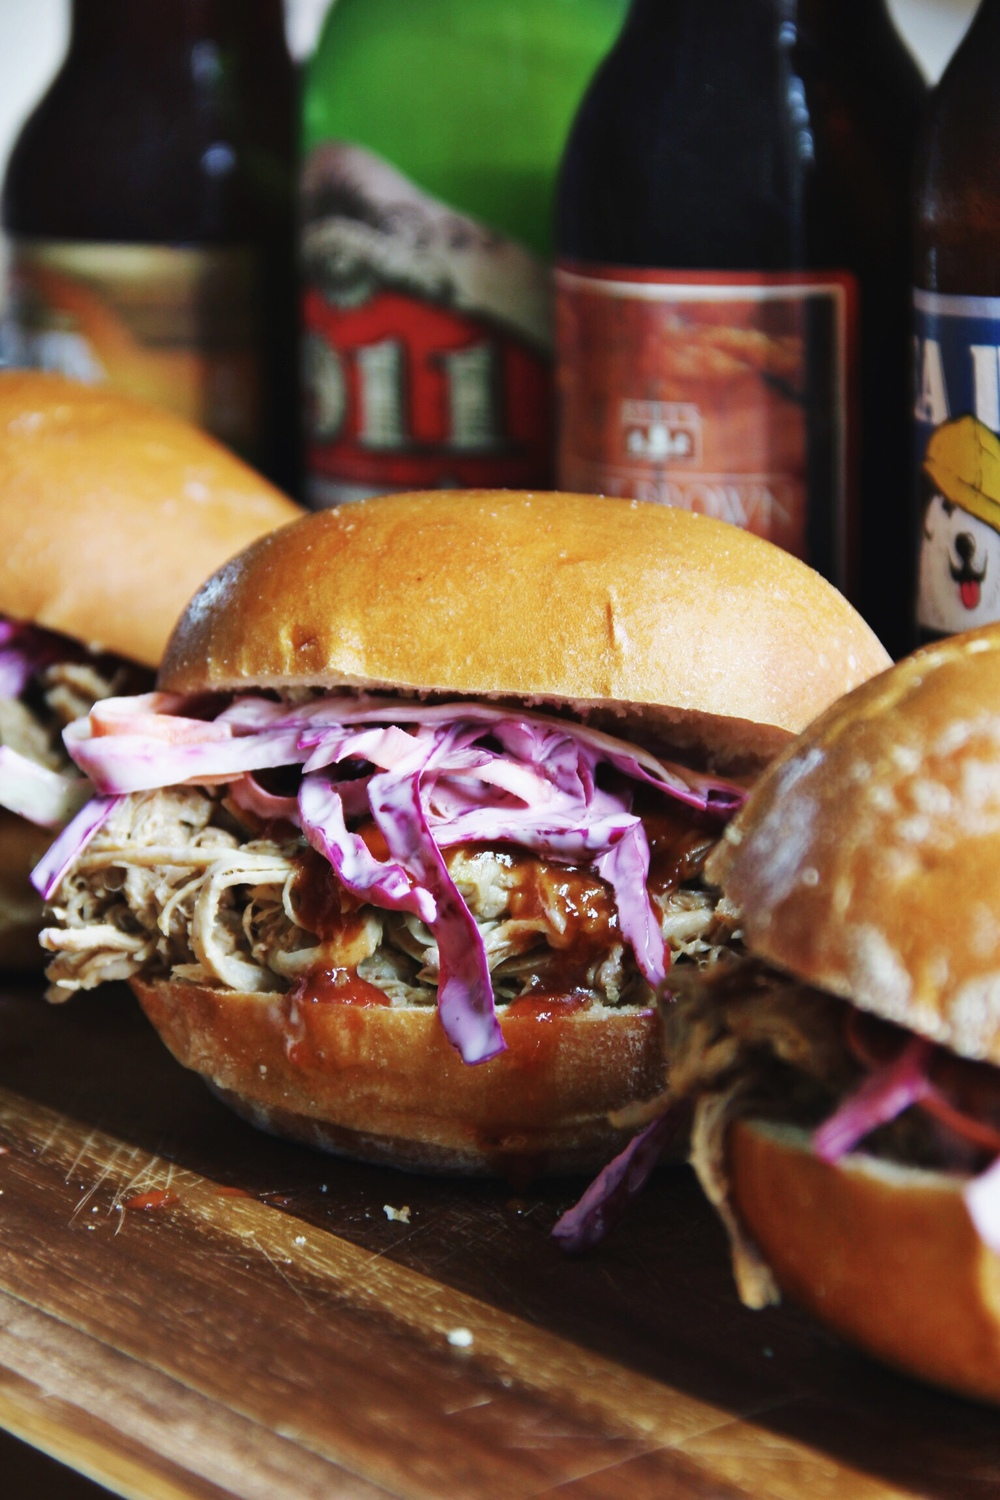 Slow braised pulled pork sandwiches and tailgating - The Pastiche